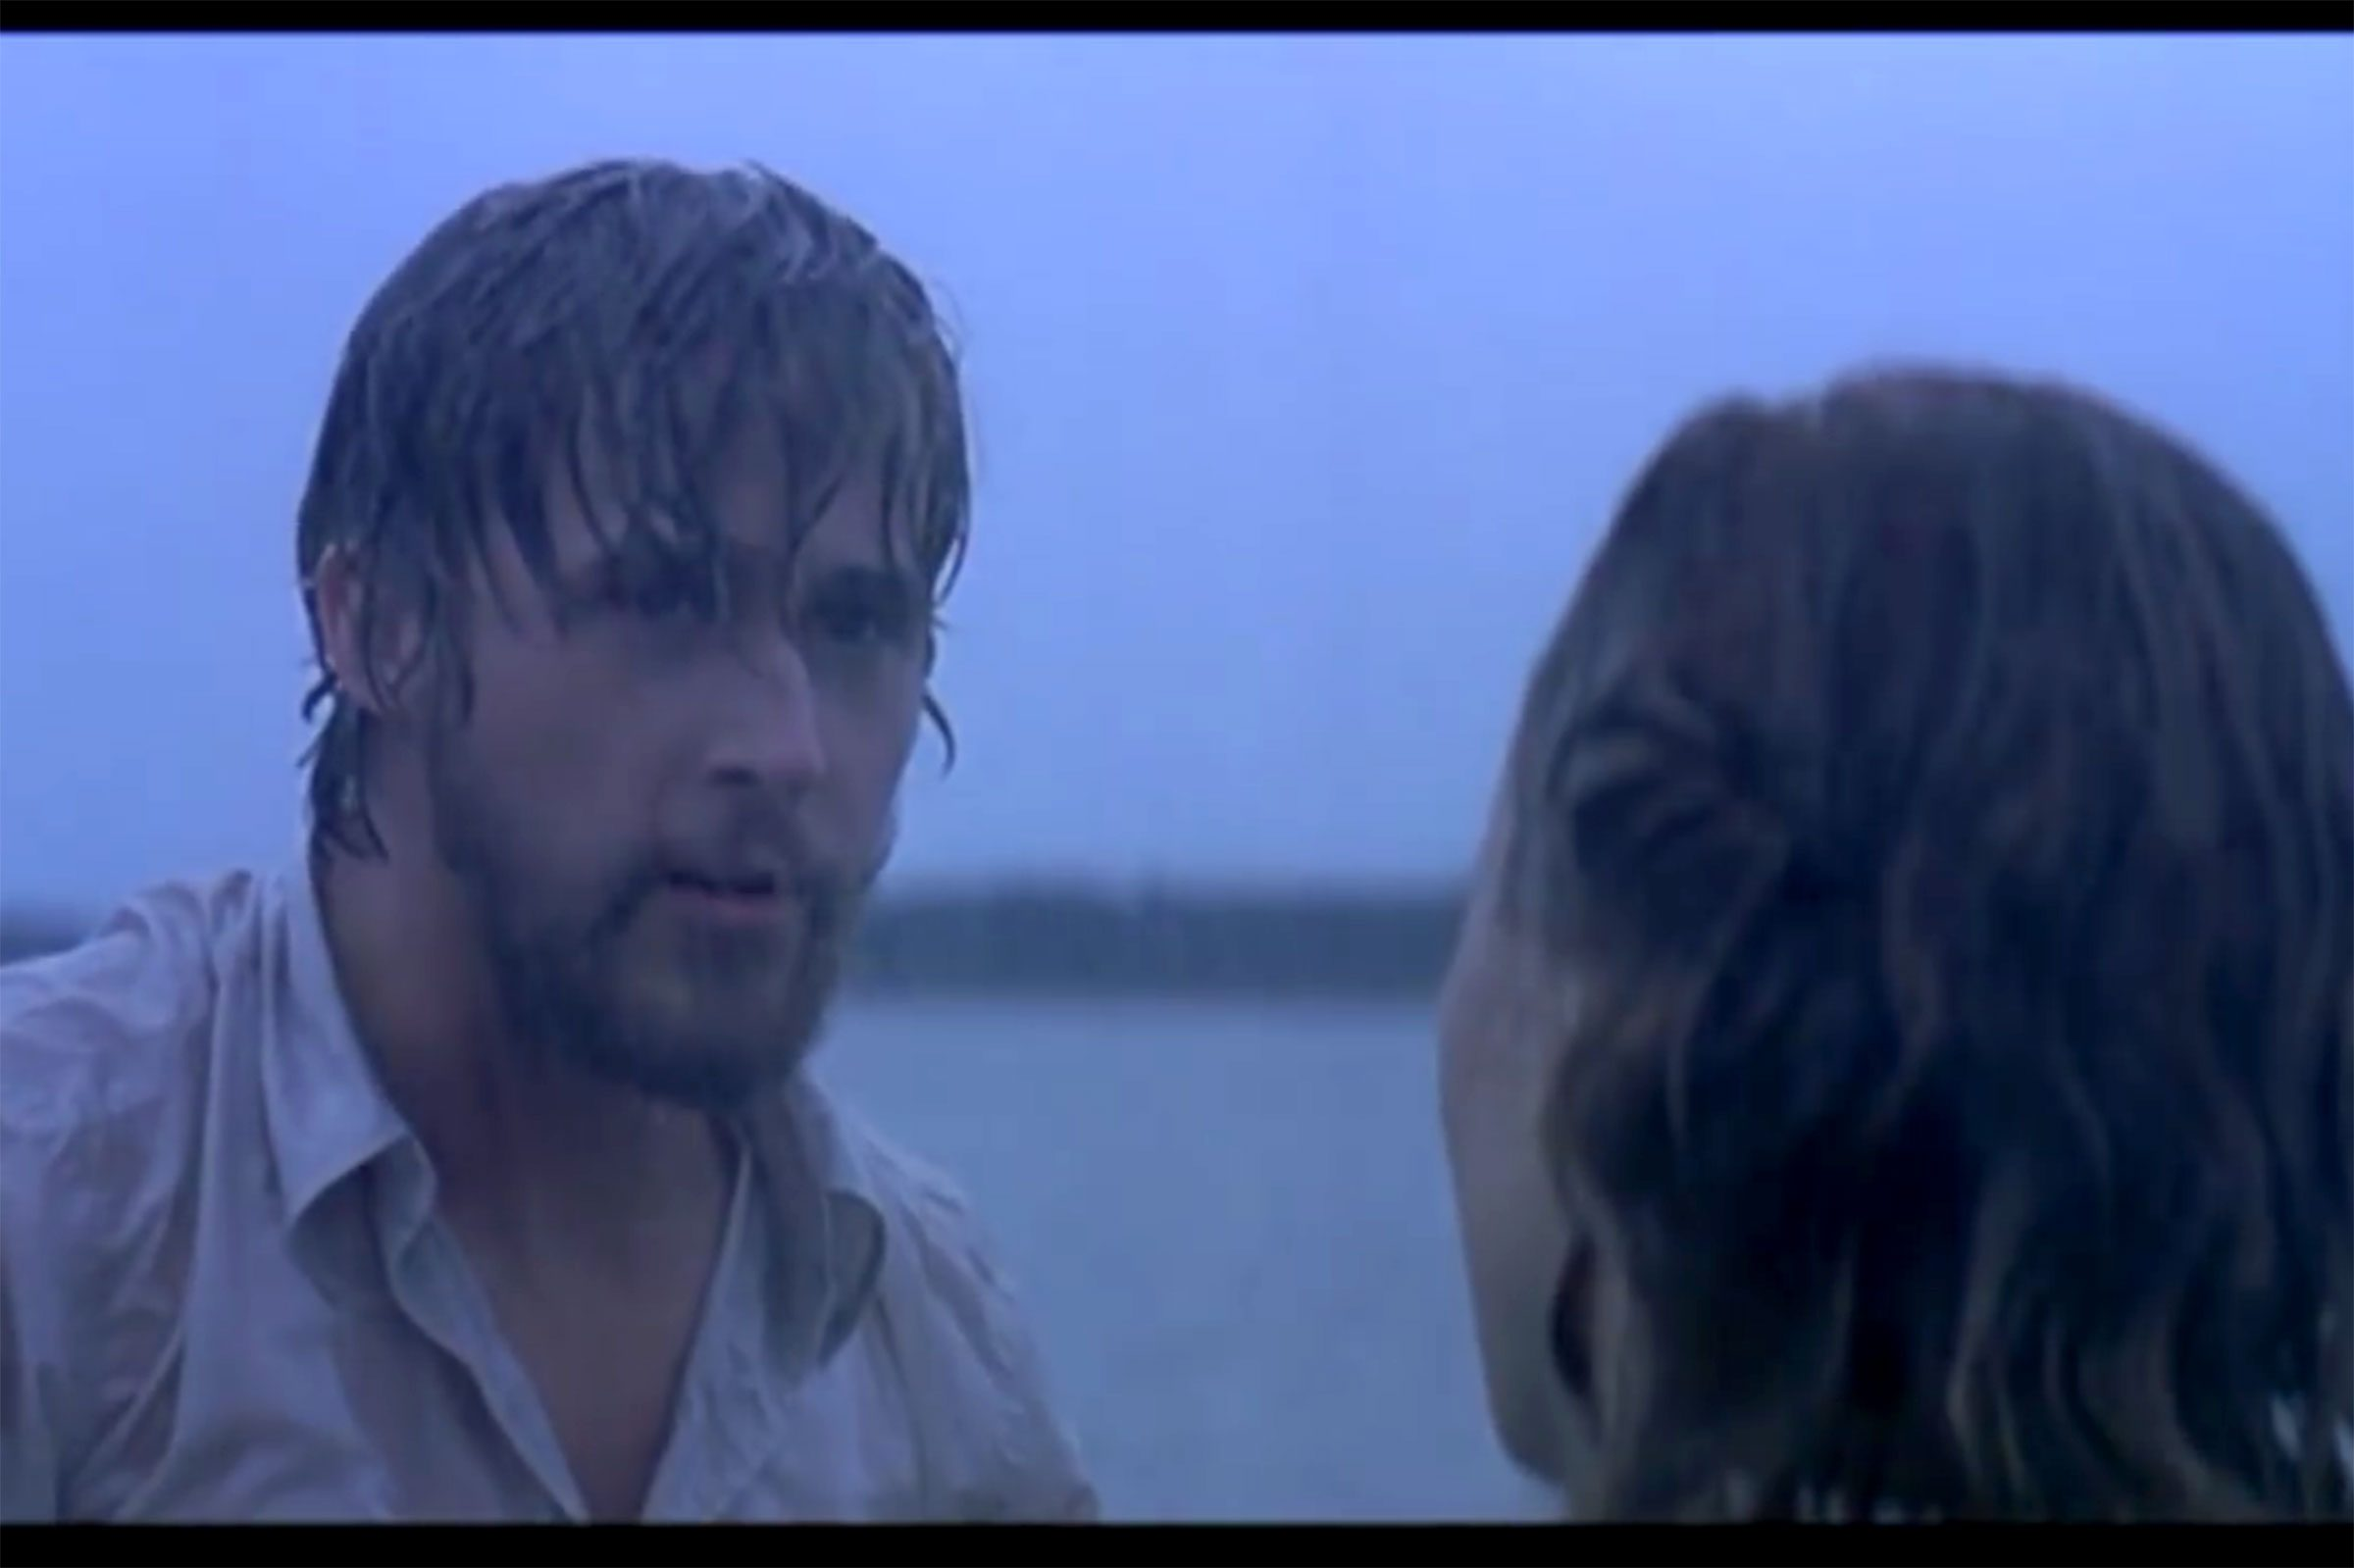 best r tic movies top films most unr tics love too the notebook 2004